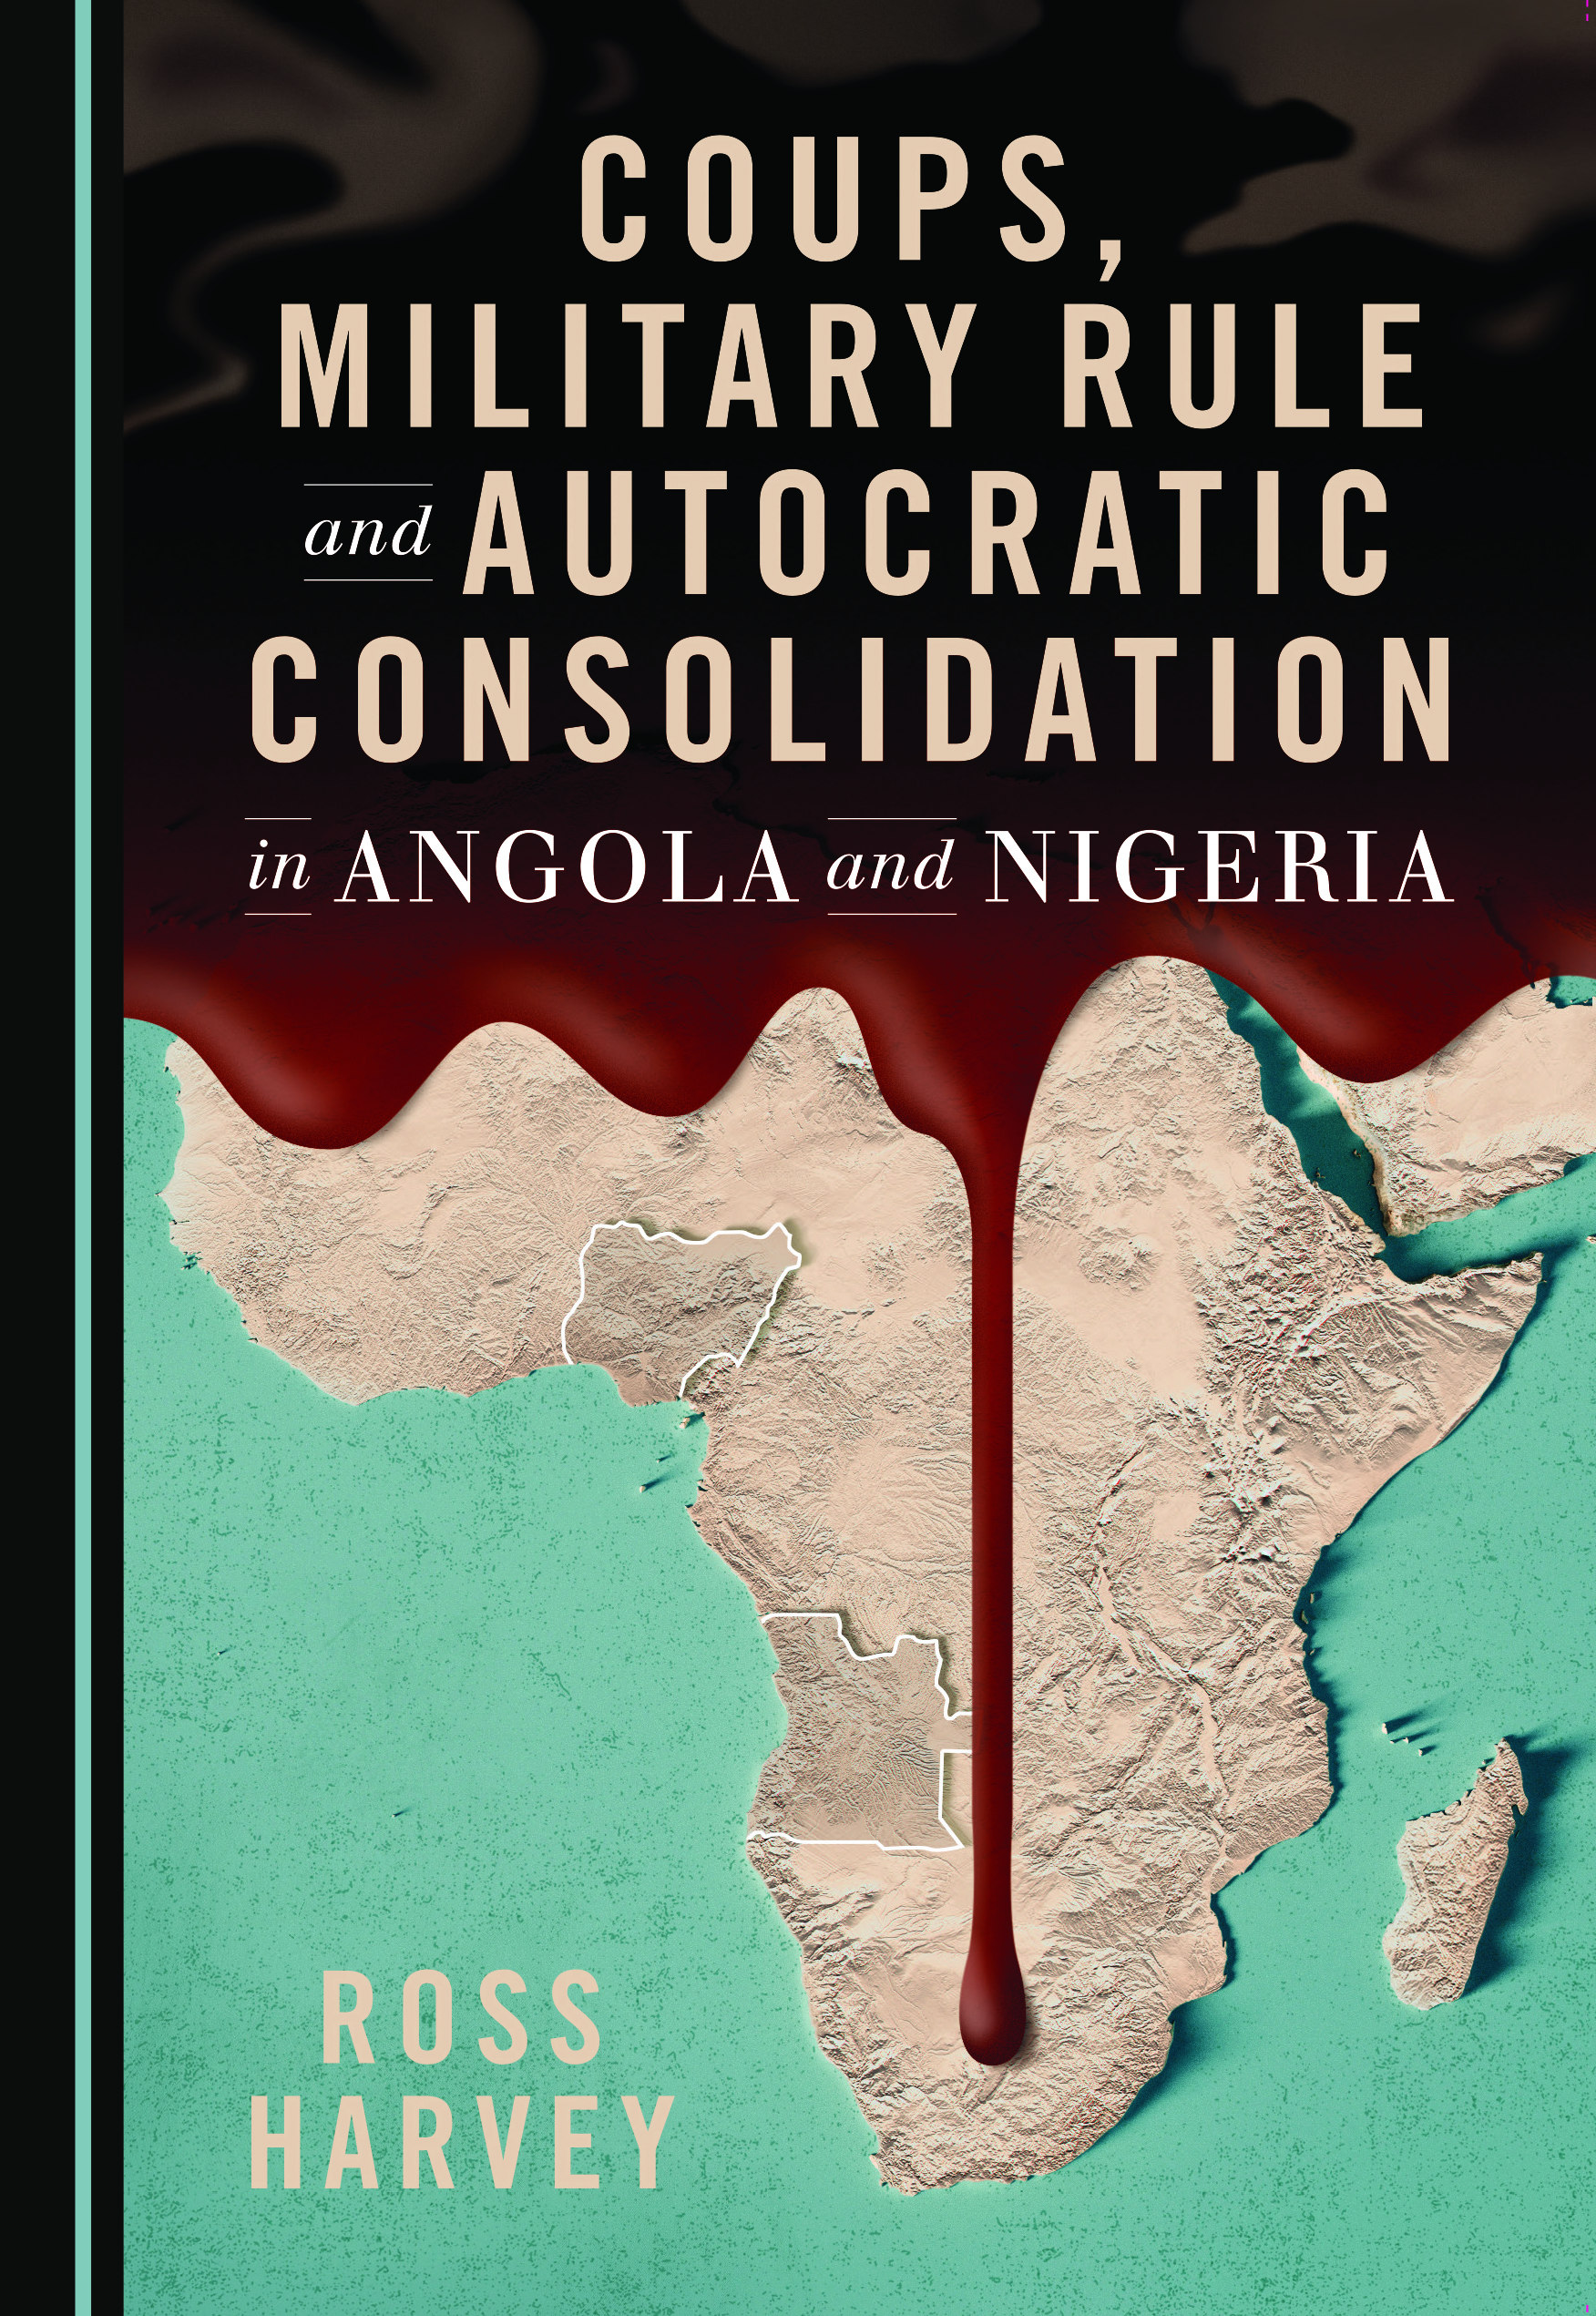 Coups, Military Rule and Autocratic Consolidation in Angola and Nigeria